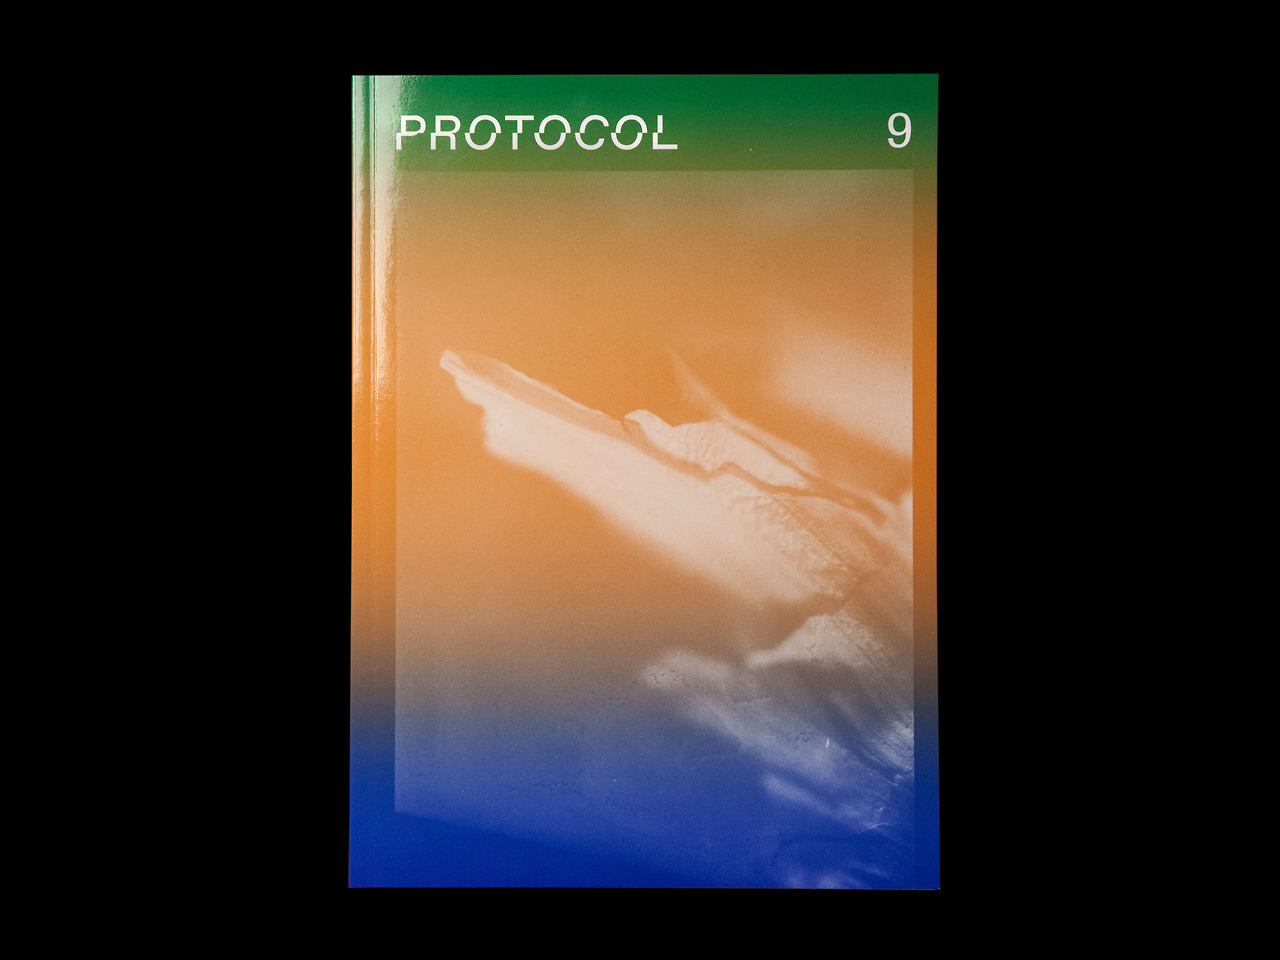 Protocol Magazine No. 9 Cover 1